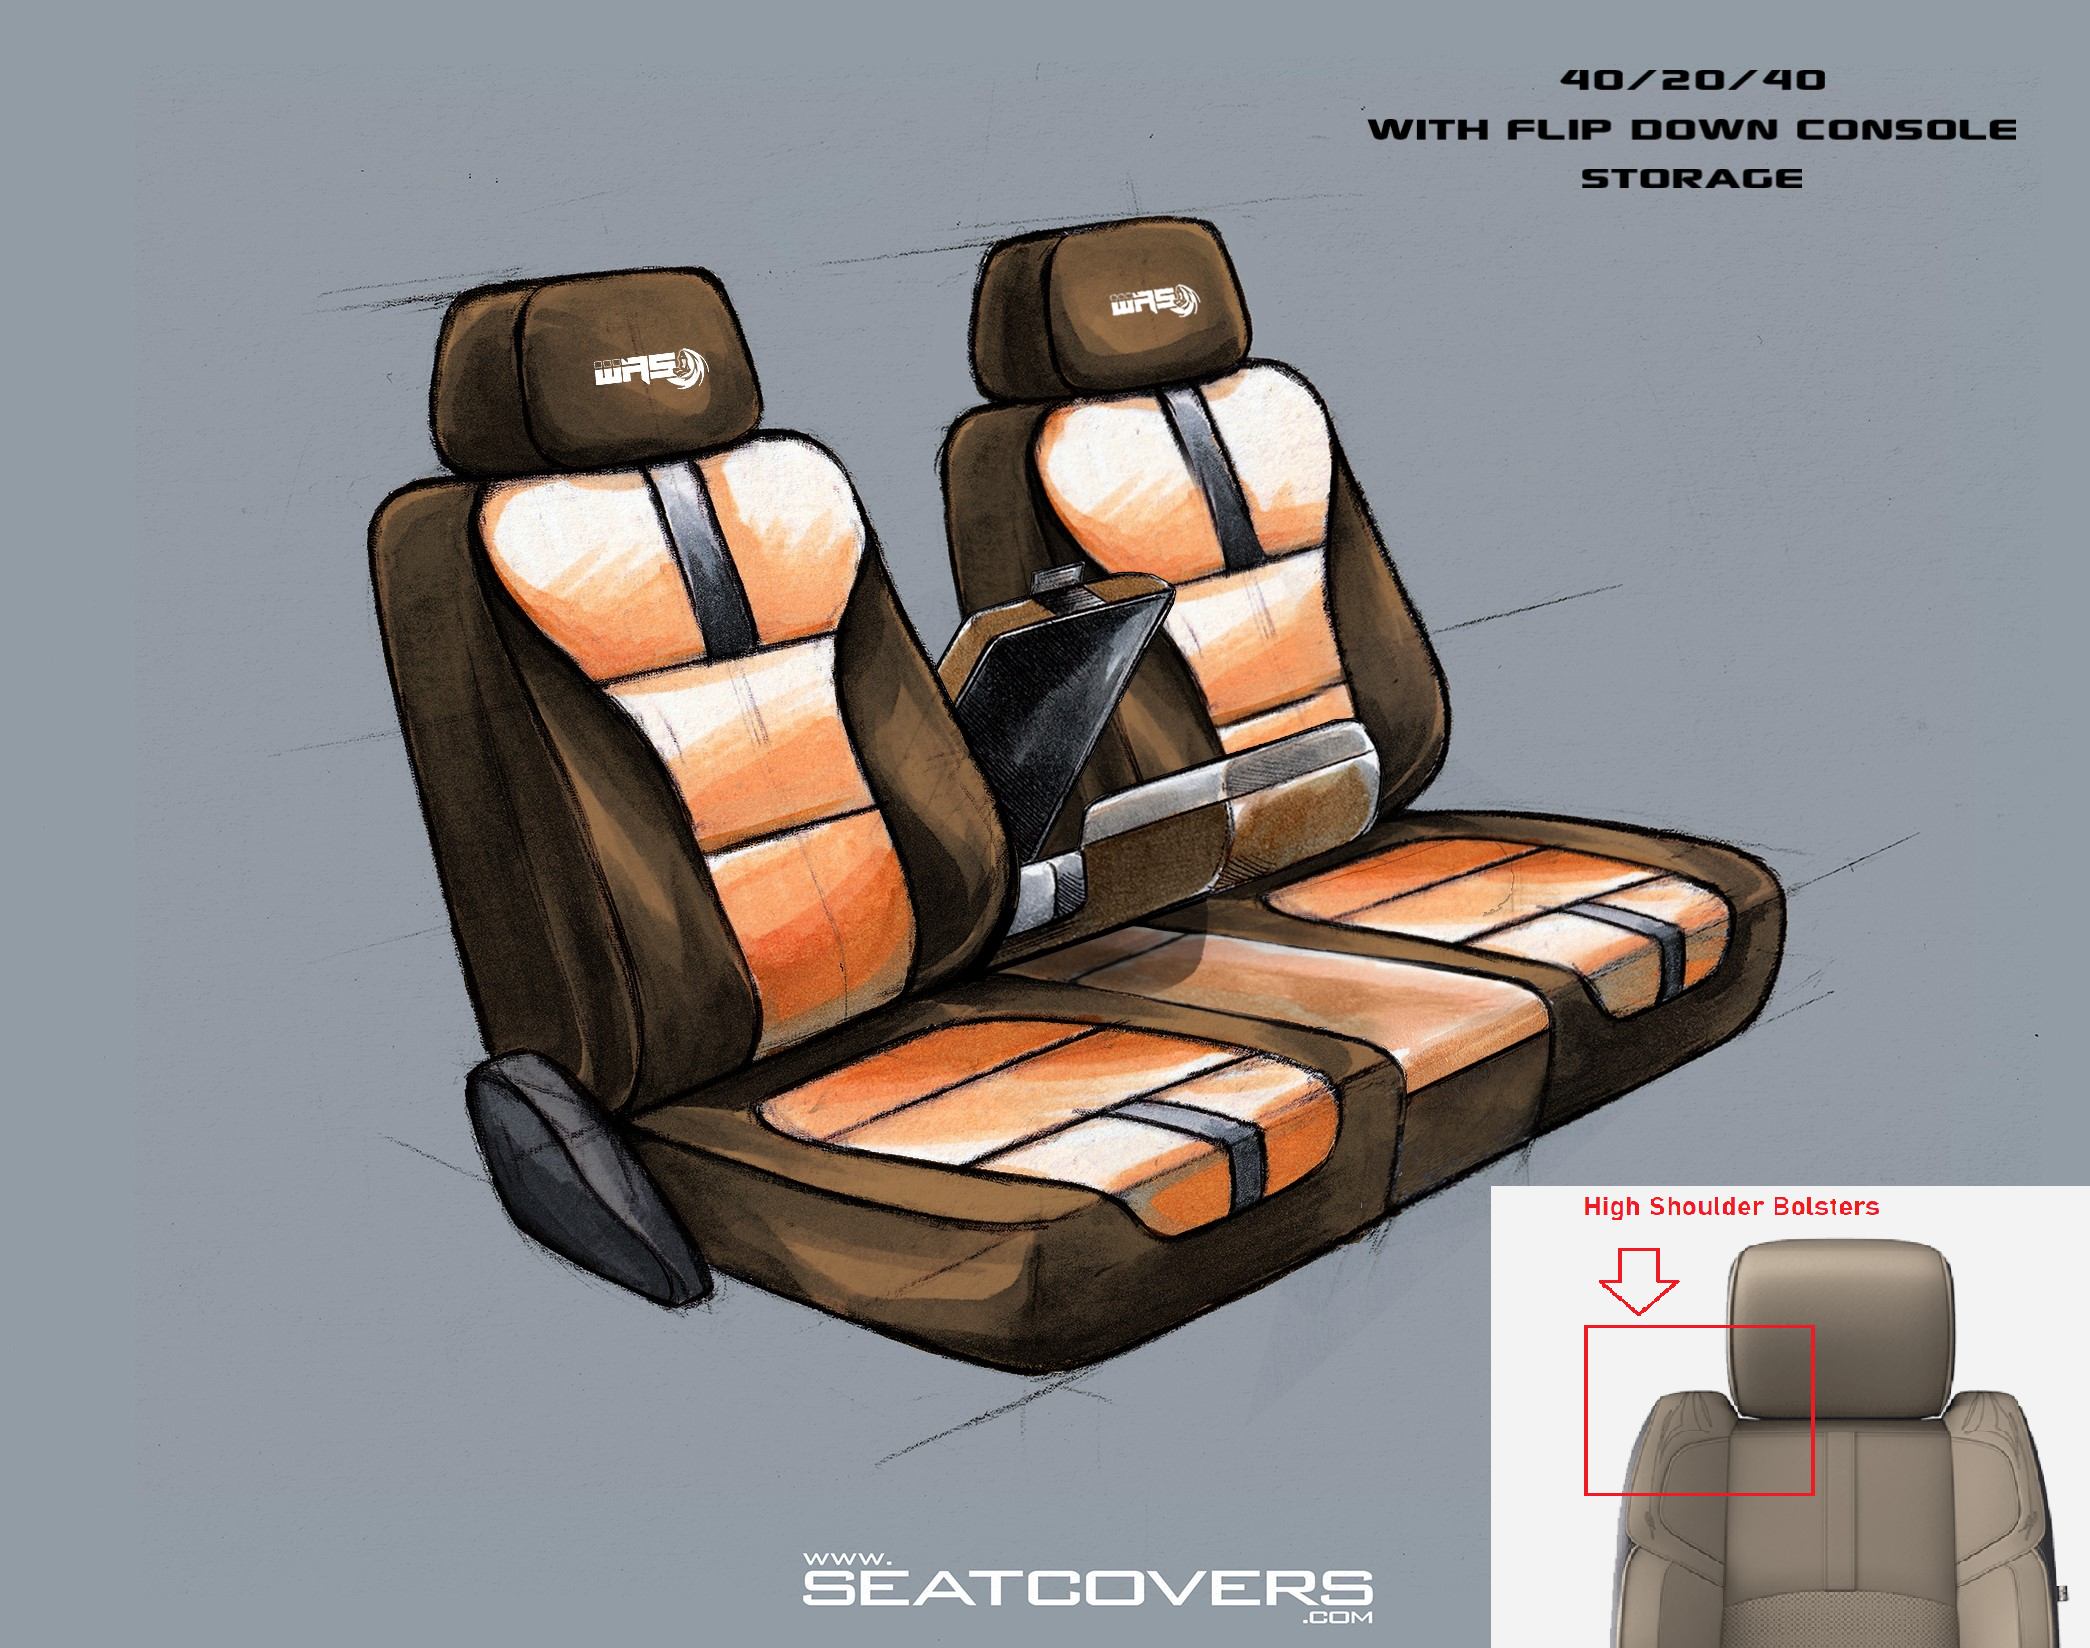 Dodge Ram seat covers ram seat covers dodge ram front seat covers seatcovers.com heavy duty seat covers for trucks